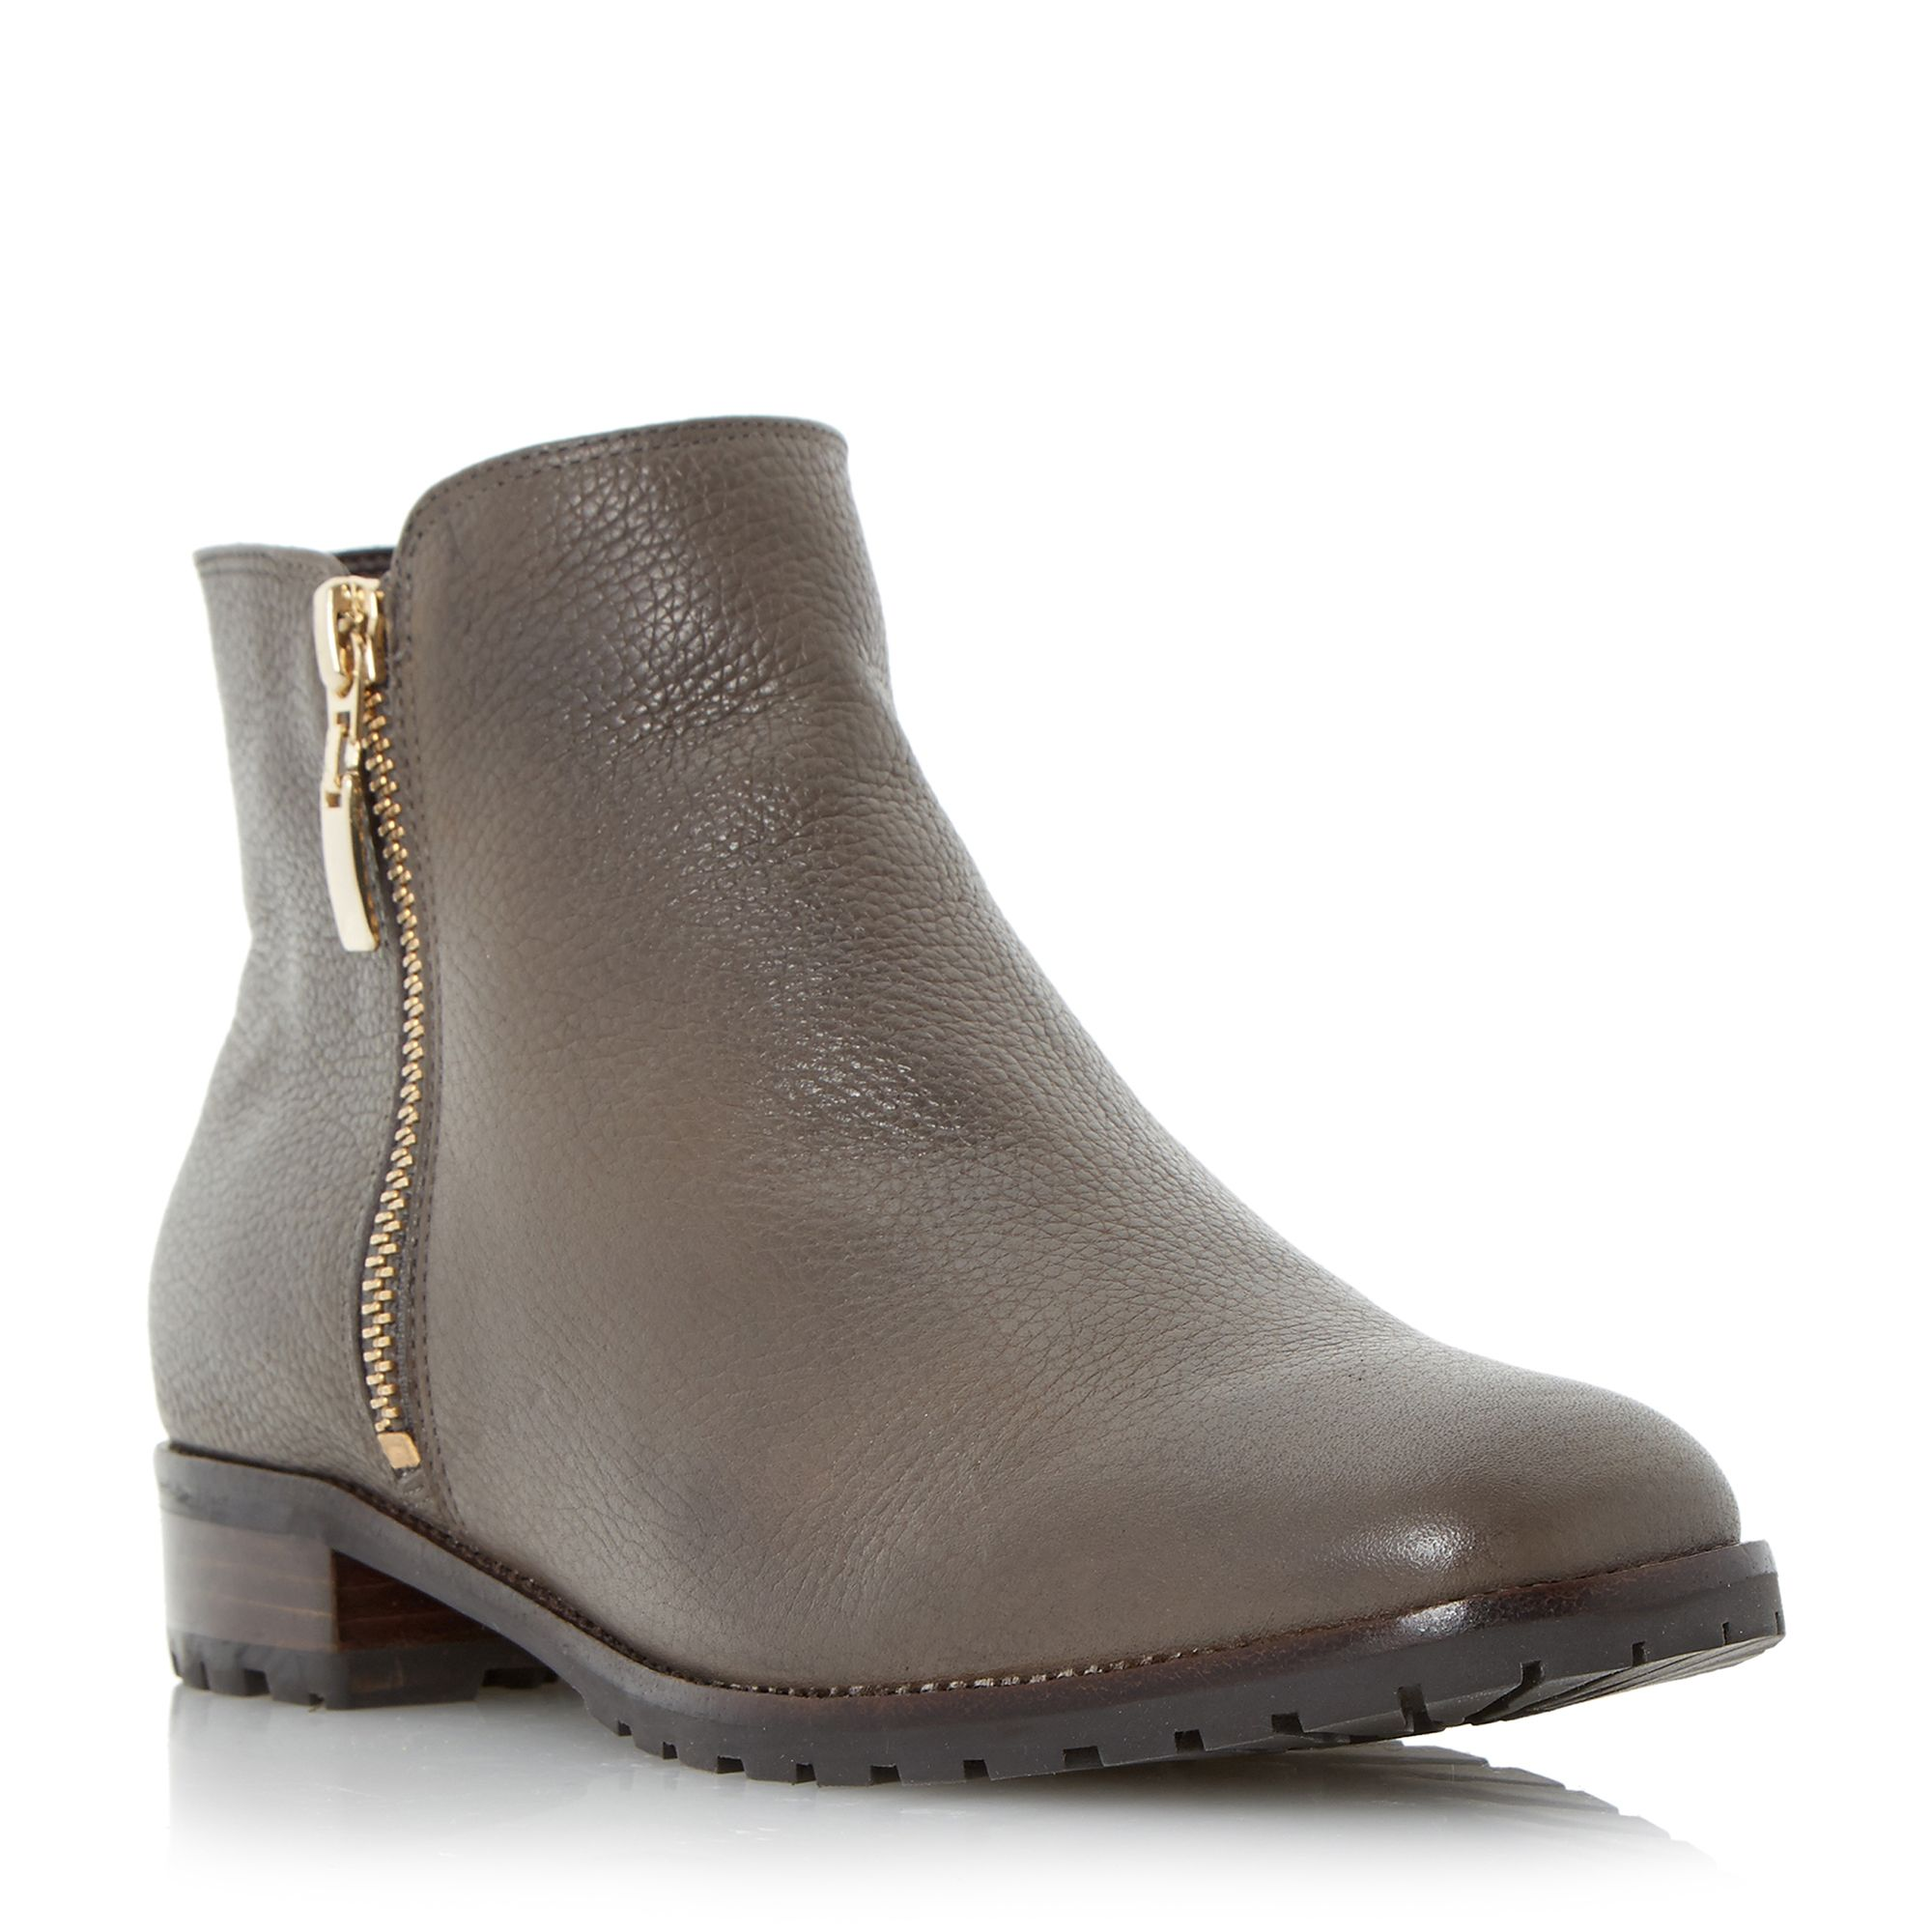 Dune Porta cleated sole side zip ankle boots, Grey